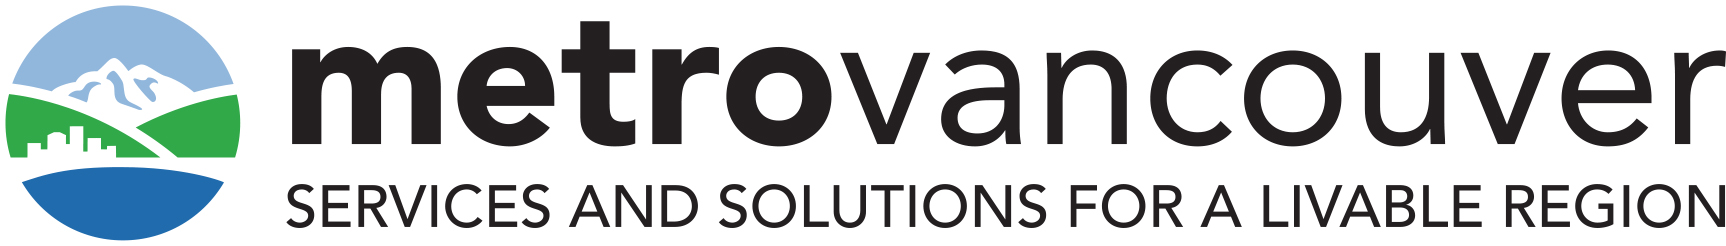 Metro Vancouver - Services and Solutions for a Livable Region